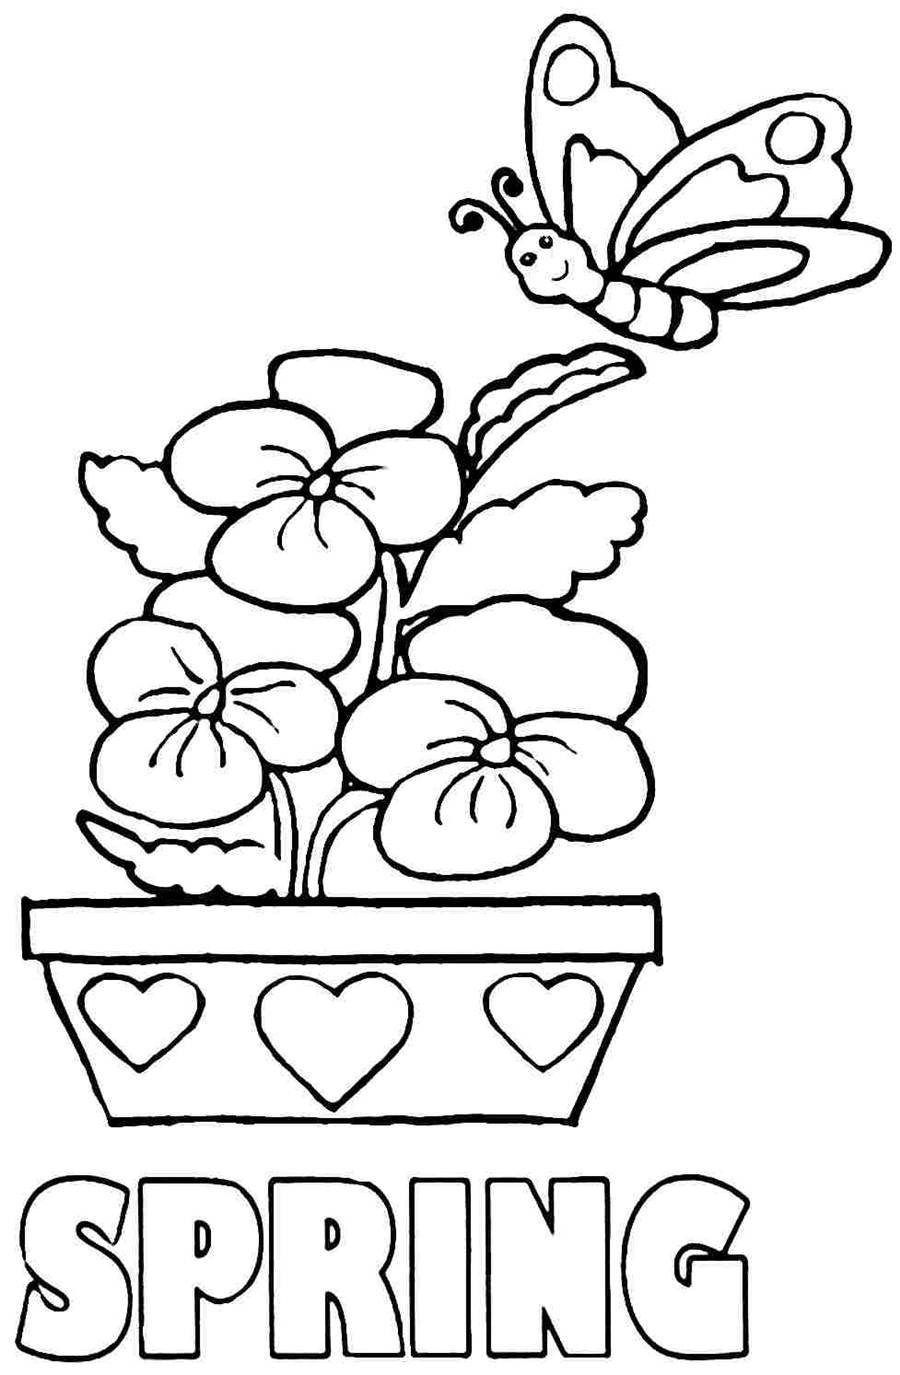 Spring Coloring Page Coloring Page Springtime Coloring Pages